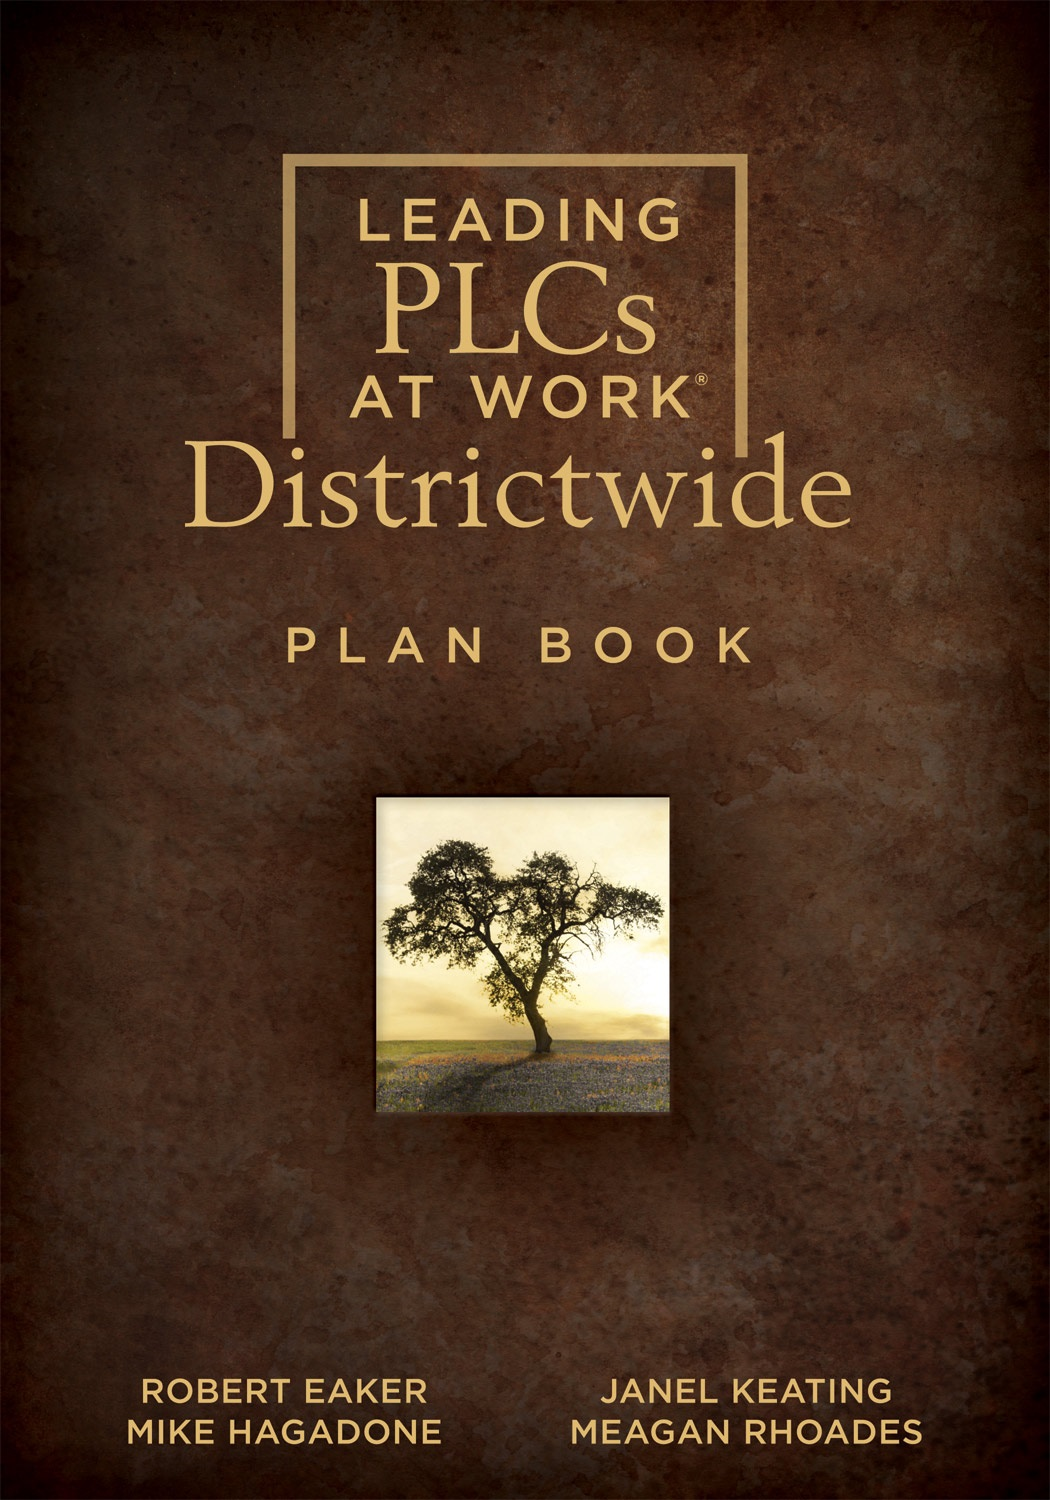 Leading PLCs at Work® Districtwide Plan Book